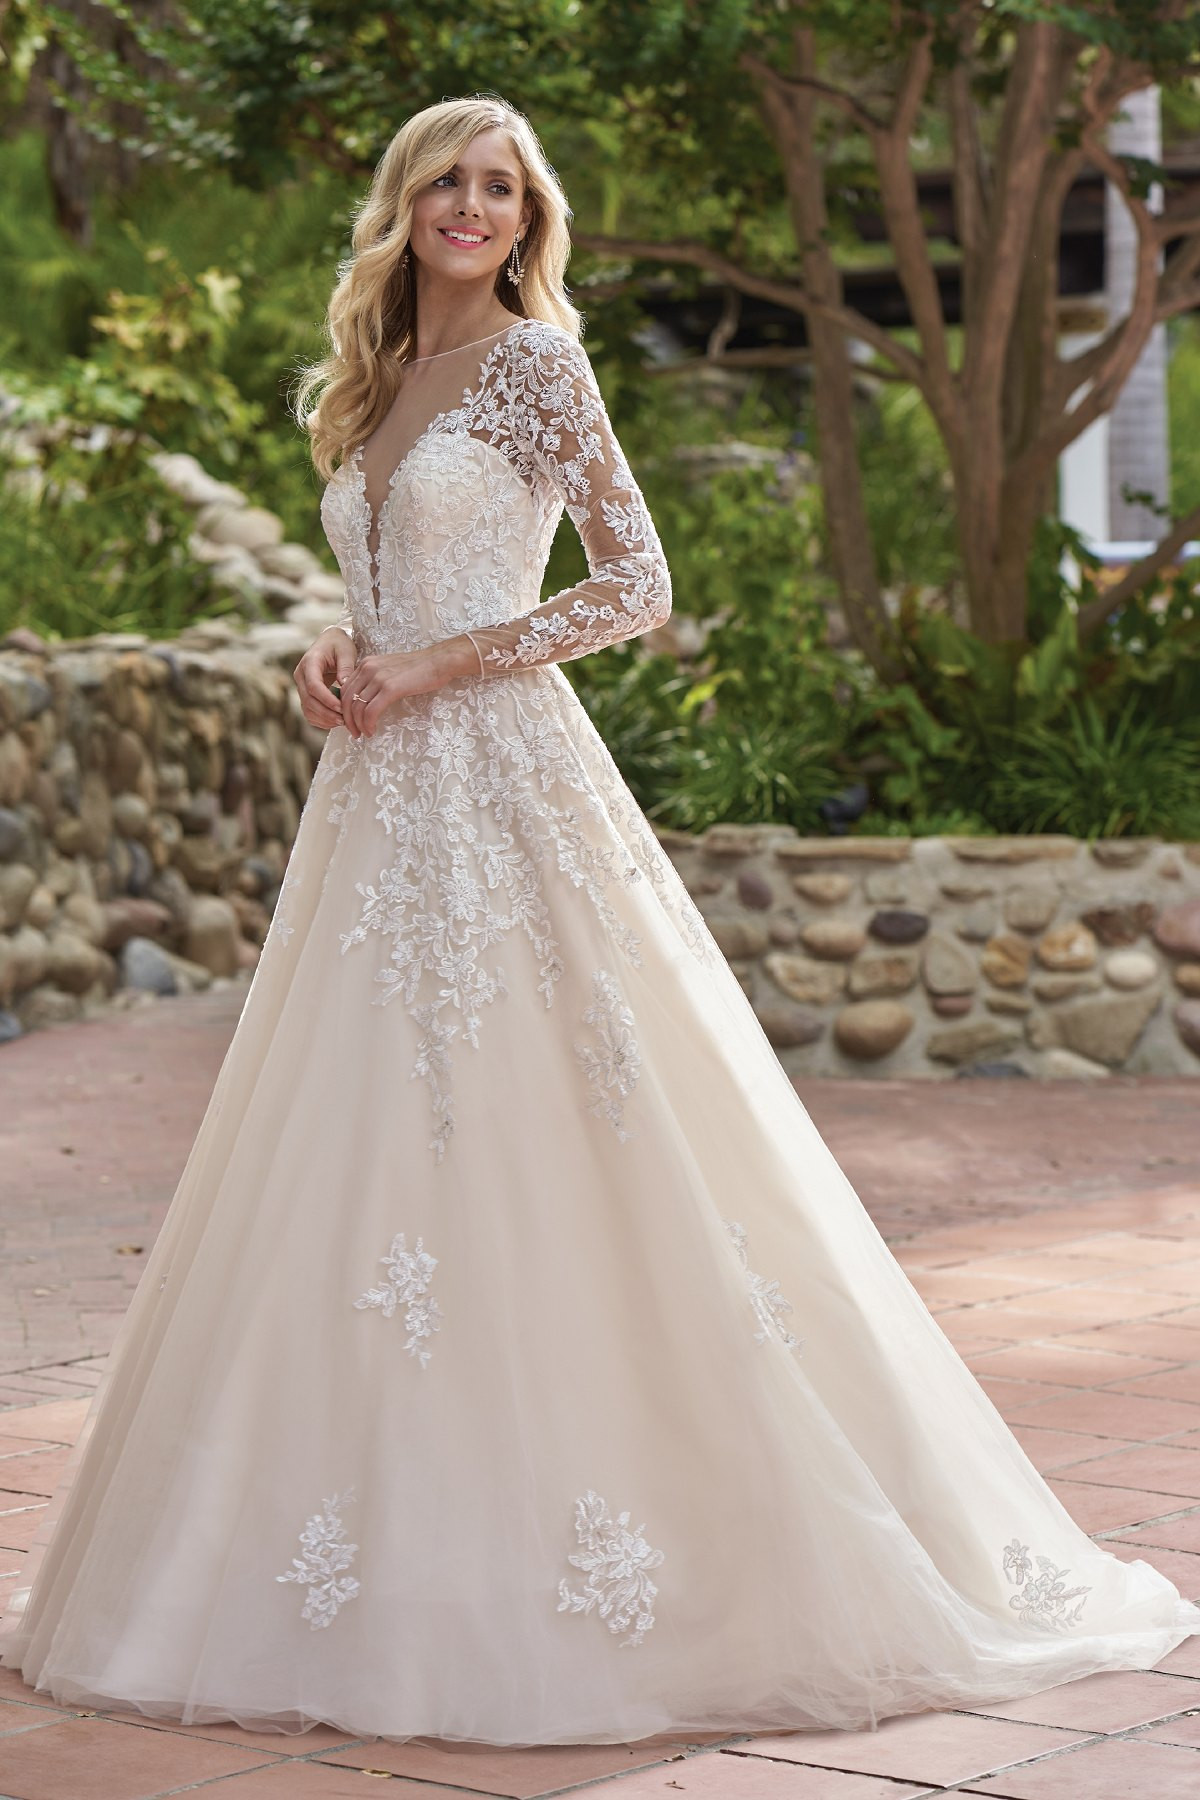 Lace Wedding Gowns  F Rustic Embroidered Lace Wedding Dress with